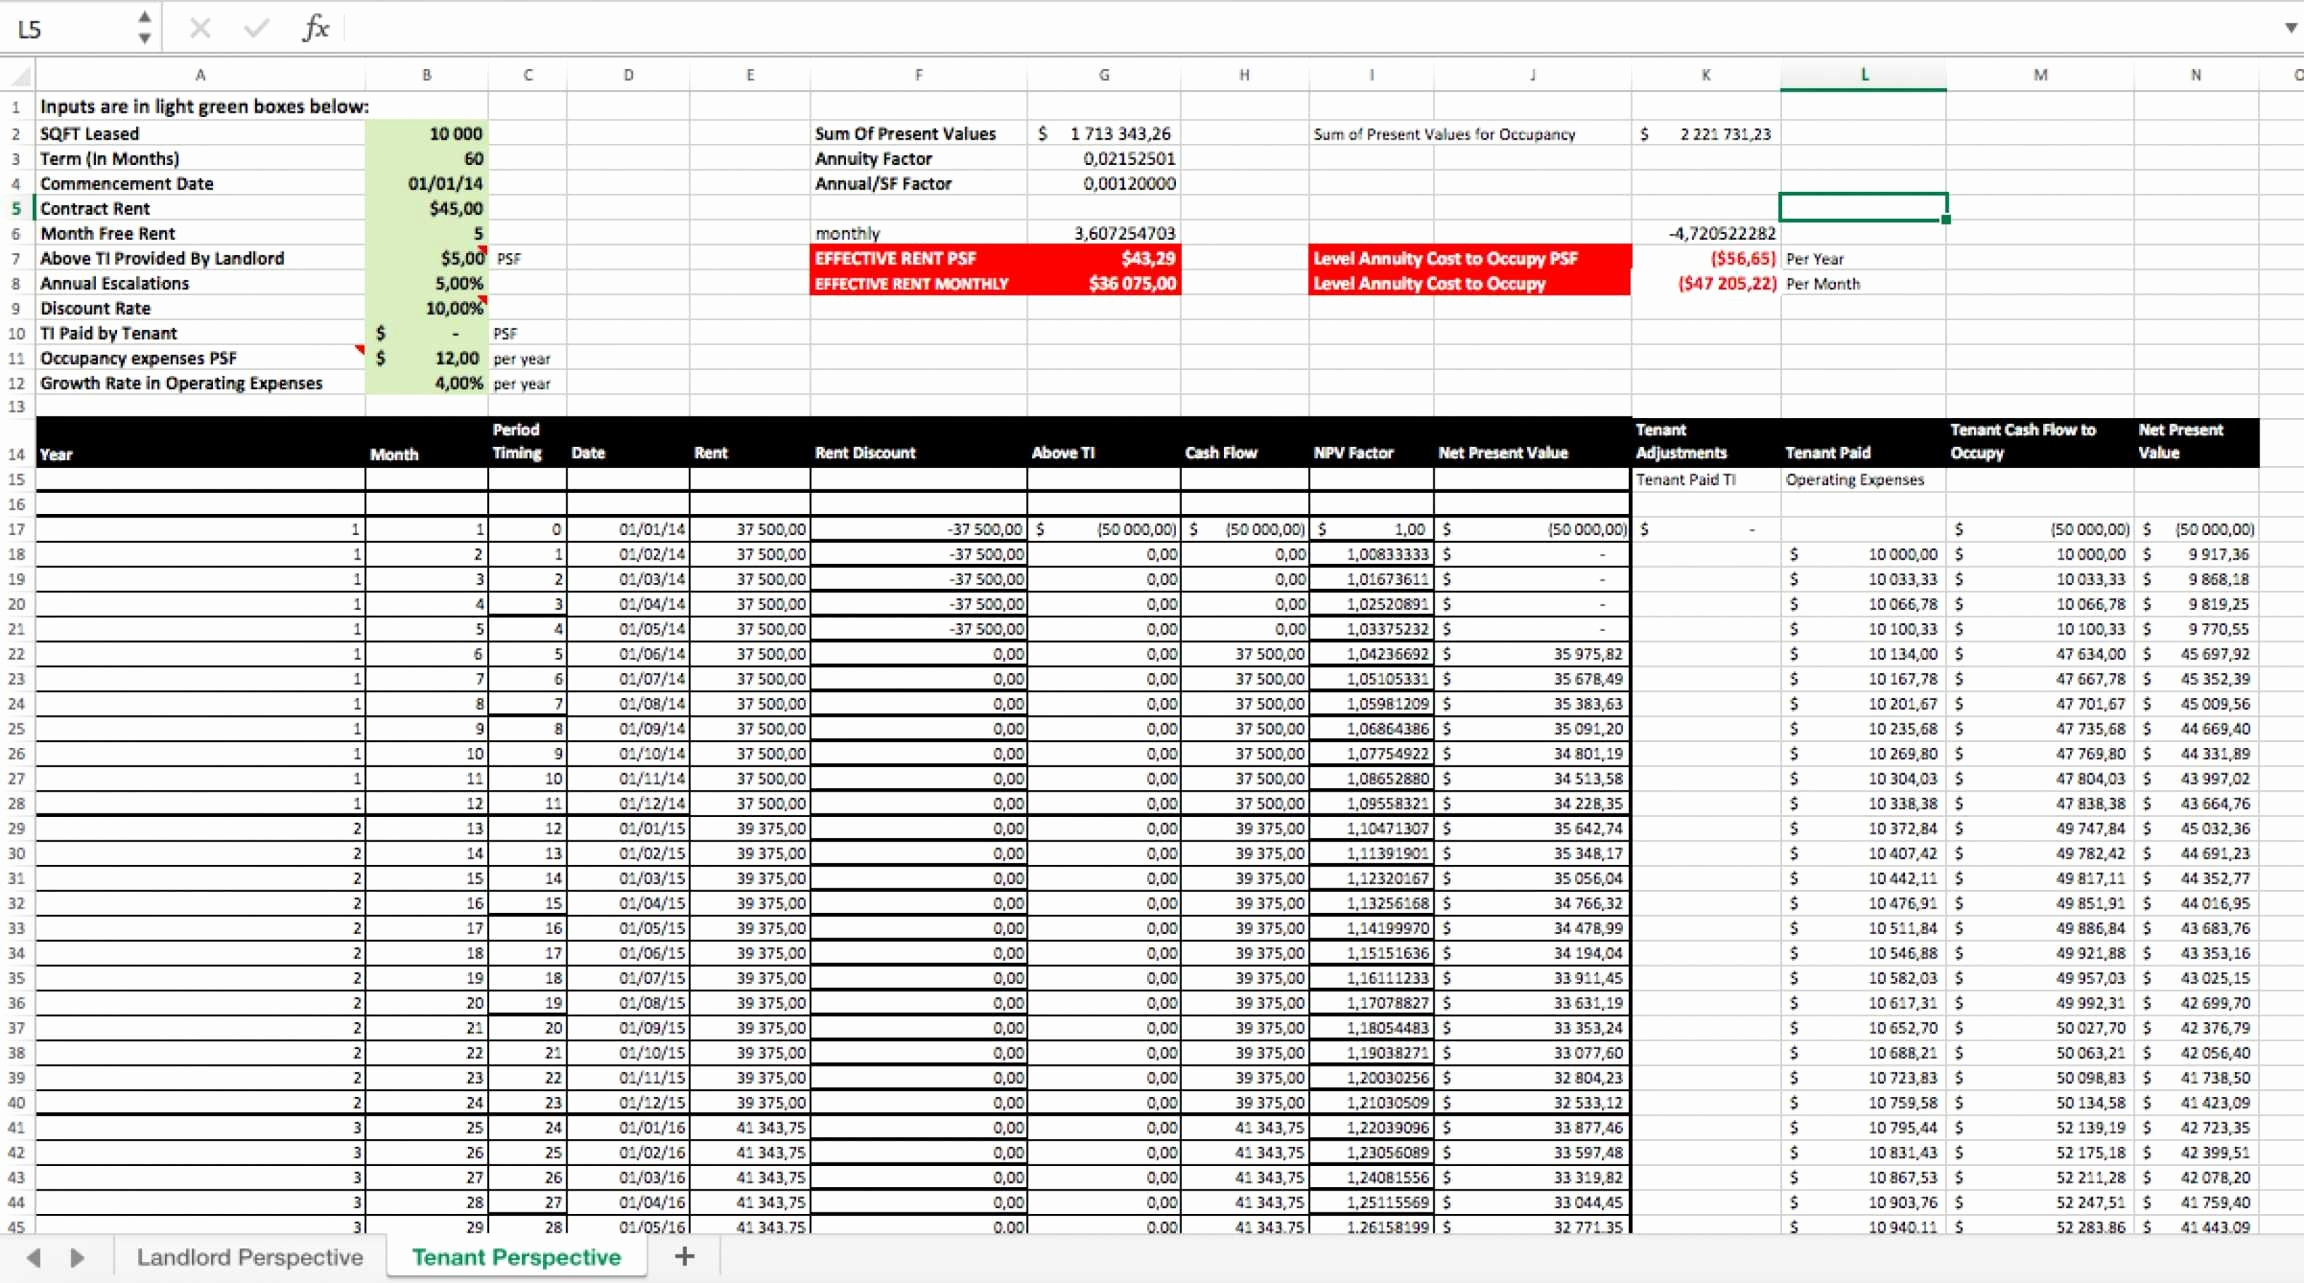 Server Inventory Spreadsheet Template With Regard To Chemical Inventory Spreadsheet Template Beautiful Server Inventory